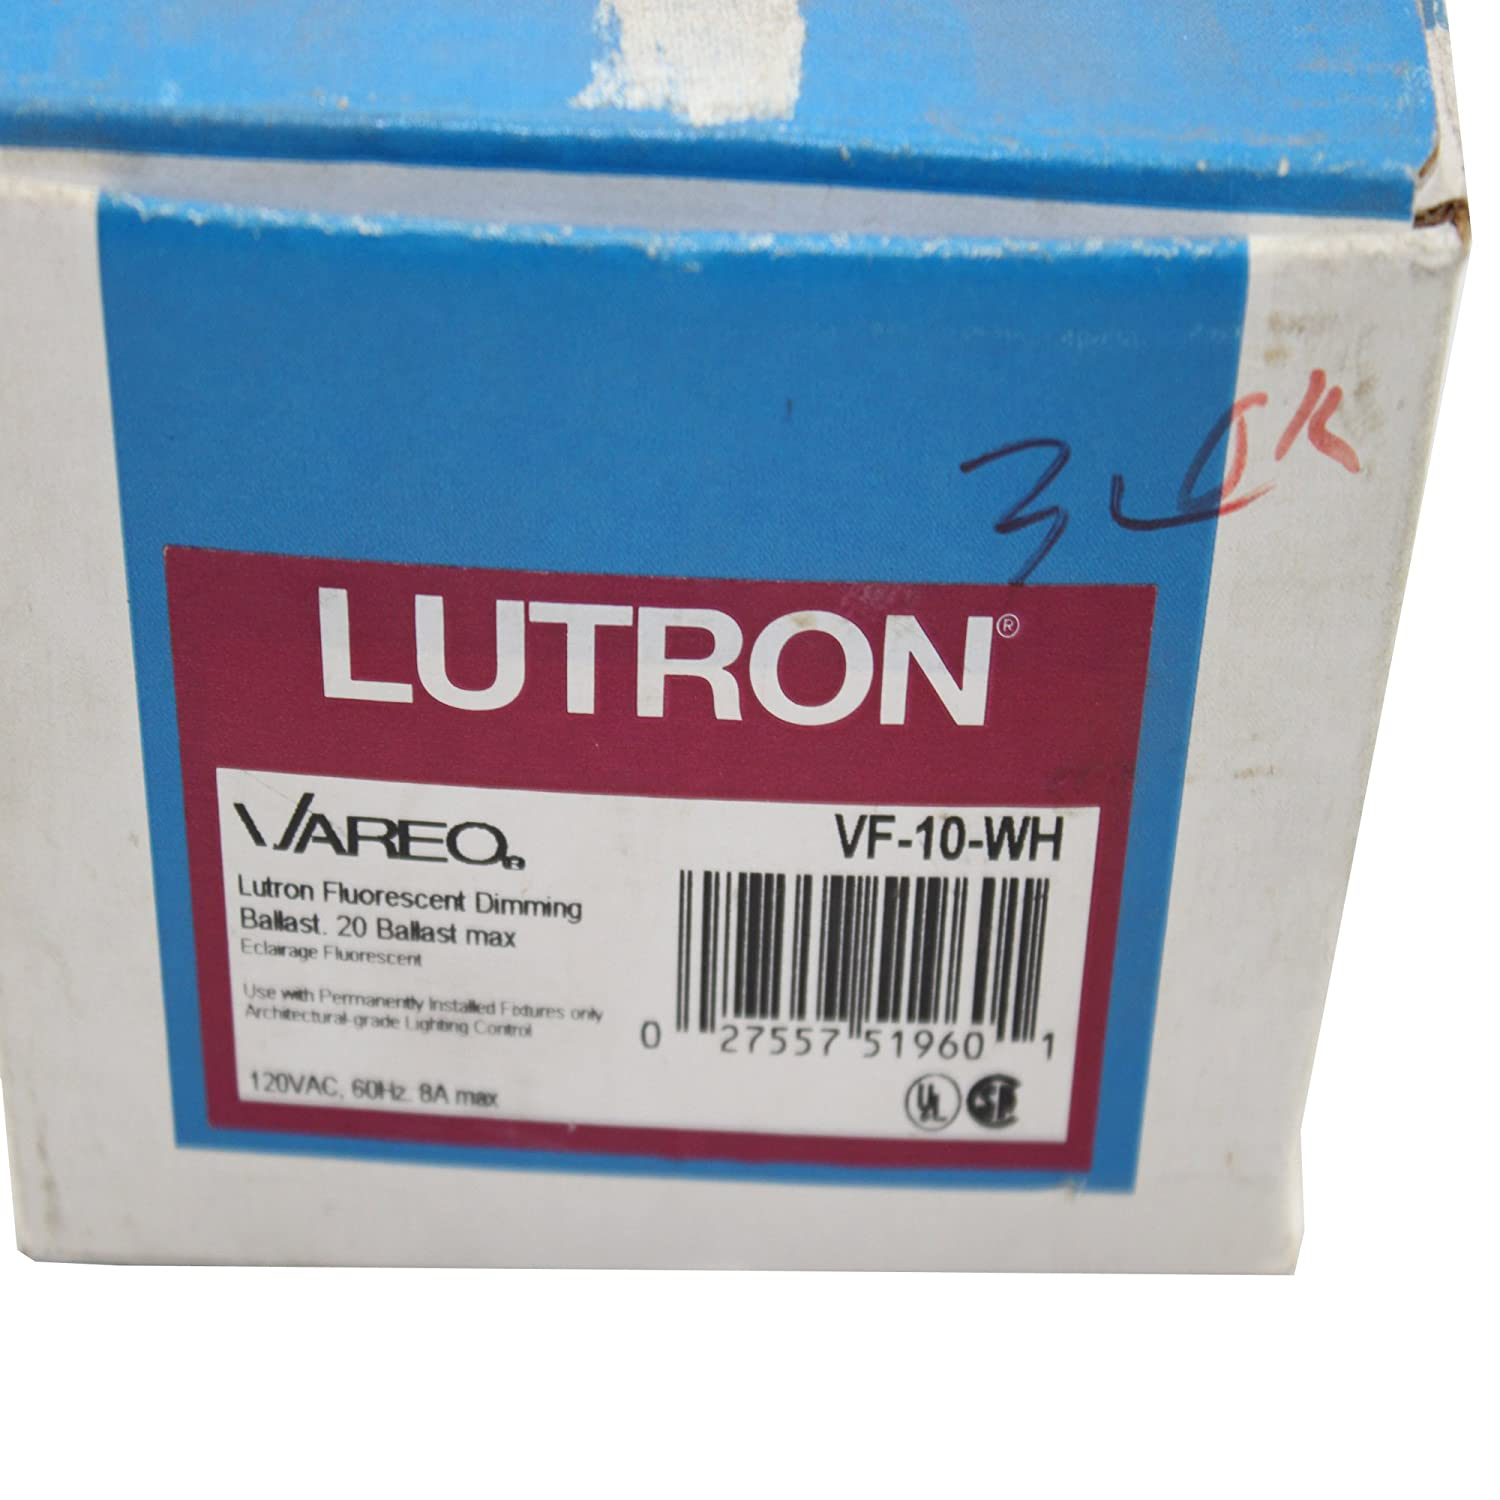 Lutron Vf-10-Wh Vareo 120V / 8A Fluorescent 3-Wire / Hi-Lume Led ...